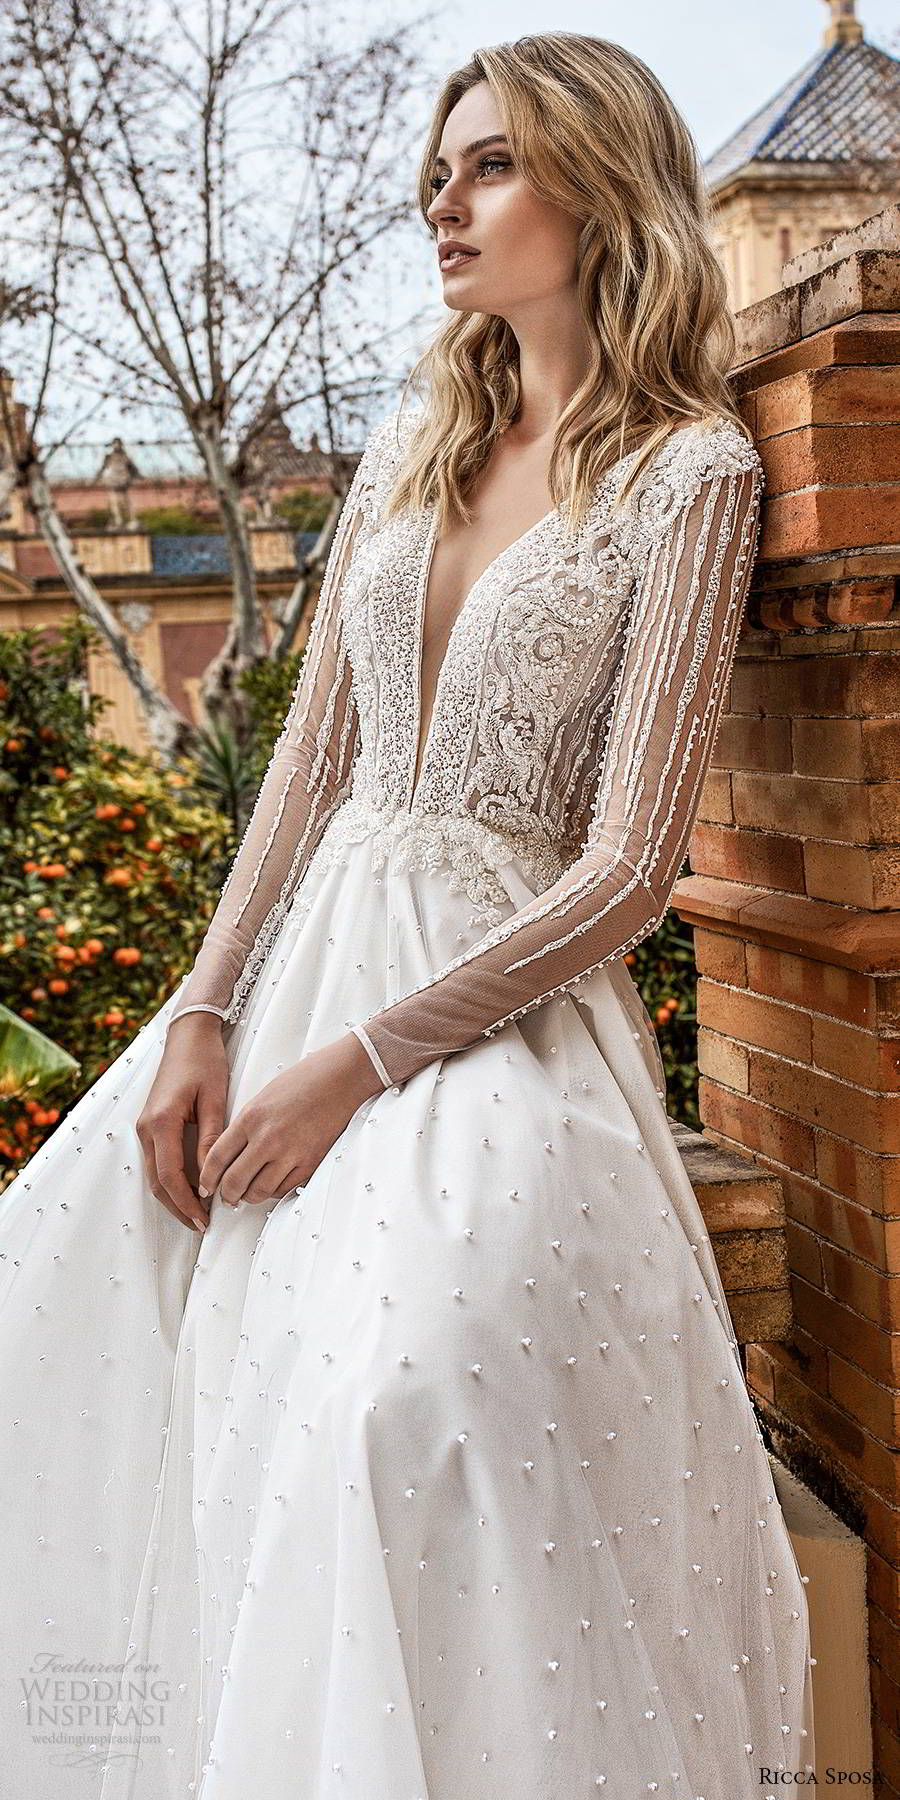 ricca sposa 2019 bridal illusion long sleeves plunging v neckline embellishd bodice glitzy romantic a line ball gown wedding dress v back chapel train (14) zv